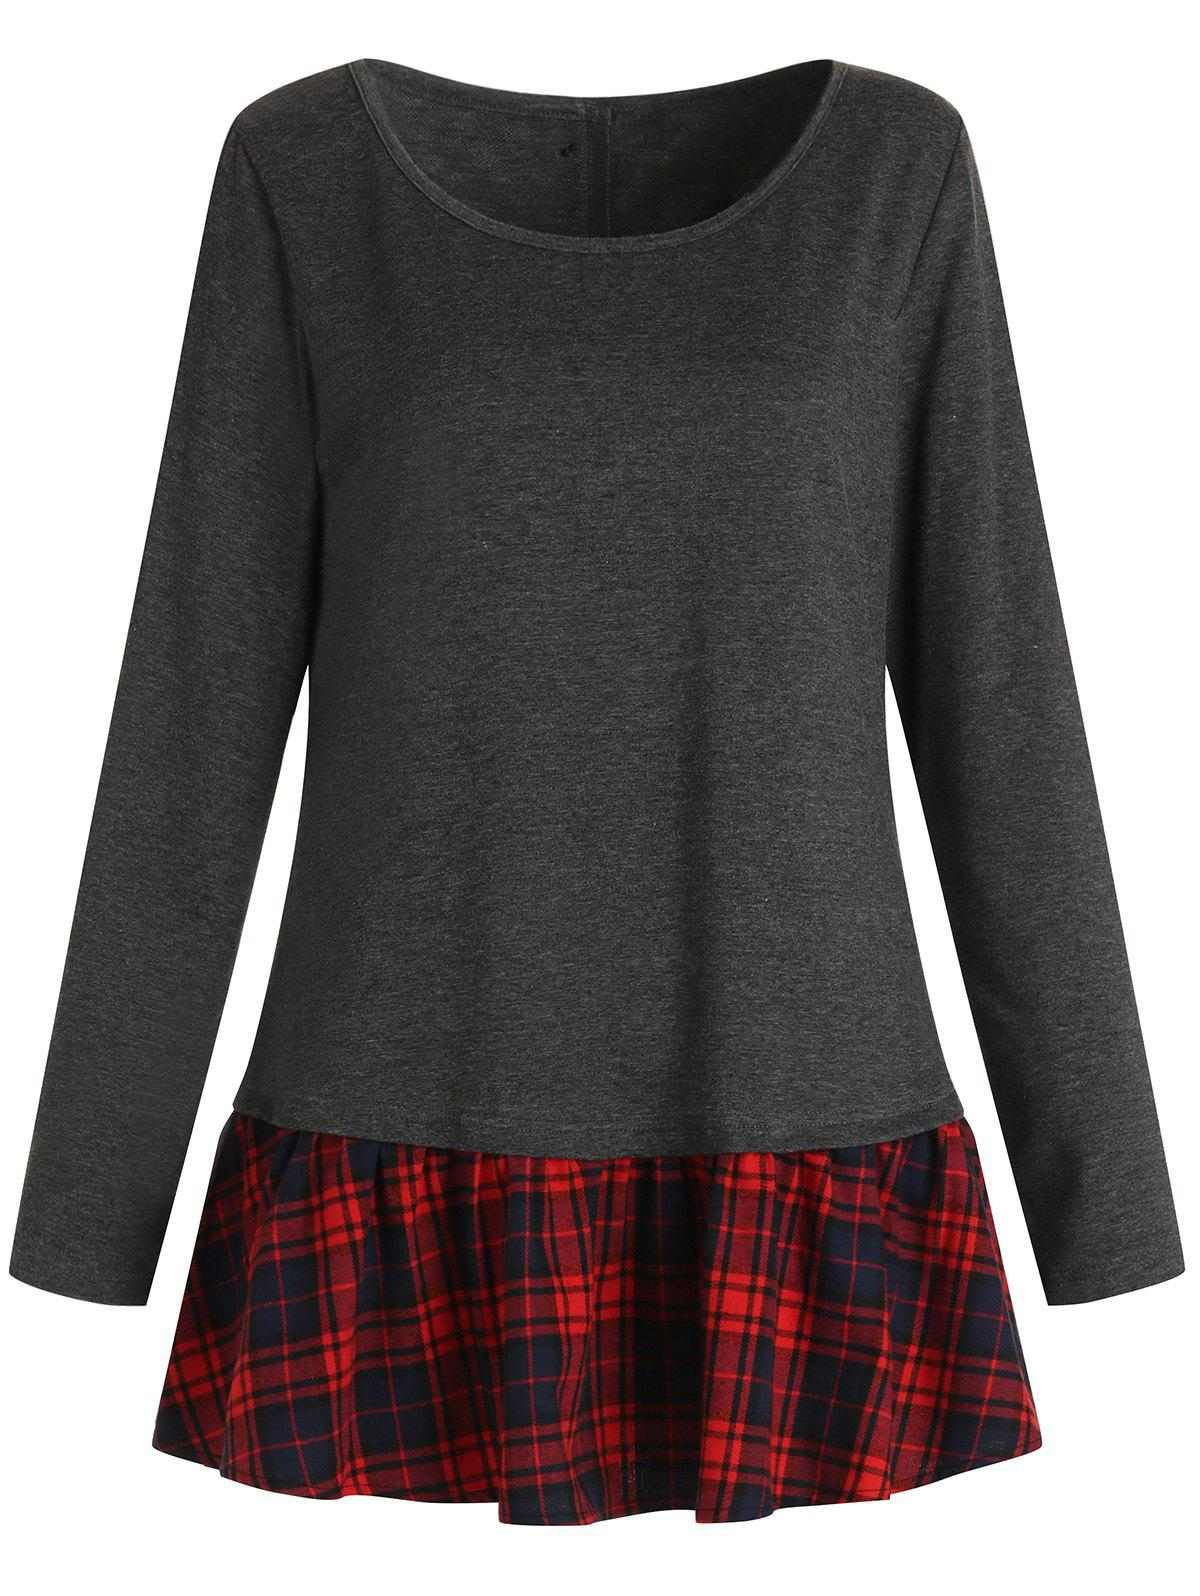 Store Plaid Insert Long Sleeve T-shirt